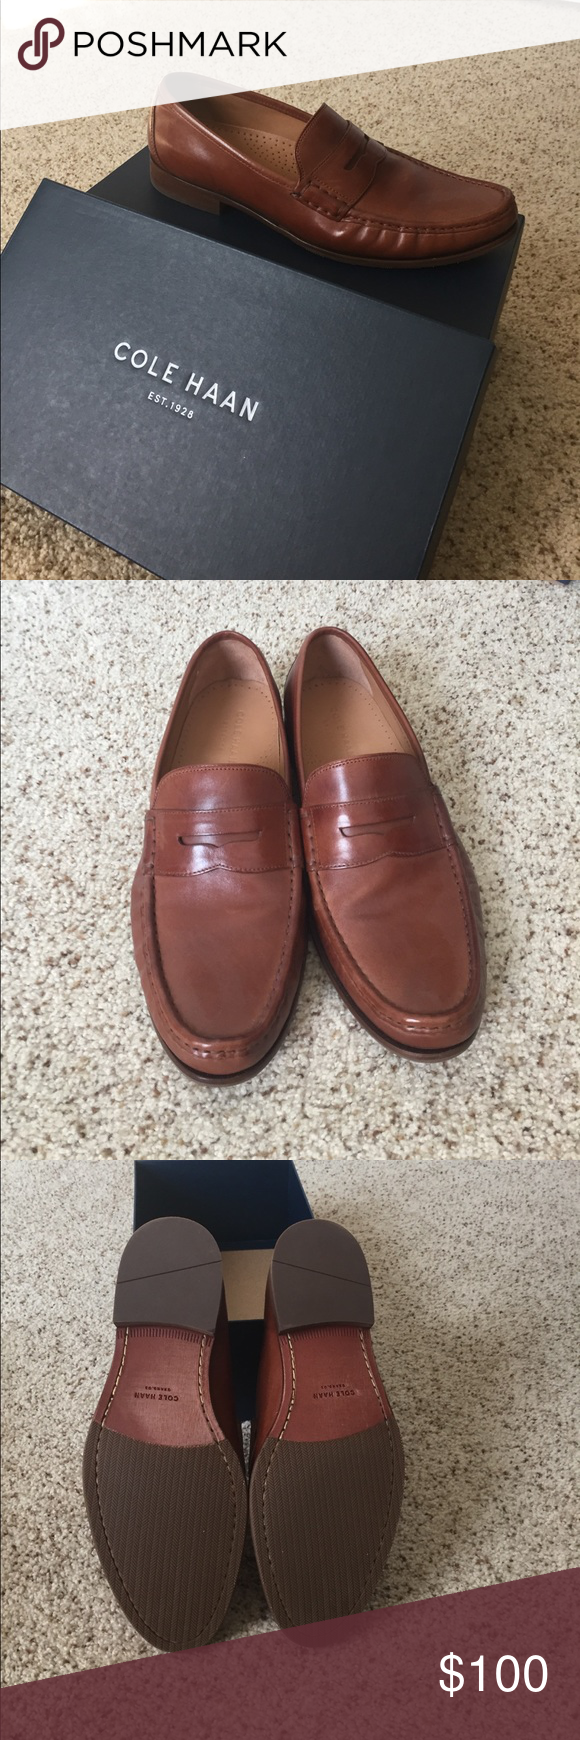 998a37989b2 NIB Cole Haan Aiden Grand Penny II Cole Haan Aiden Grand Penny II Brand new  in box never been worn size  11M color  British tan Cole Haan Shoes Loafers  ...